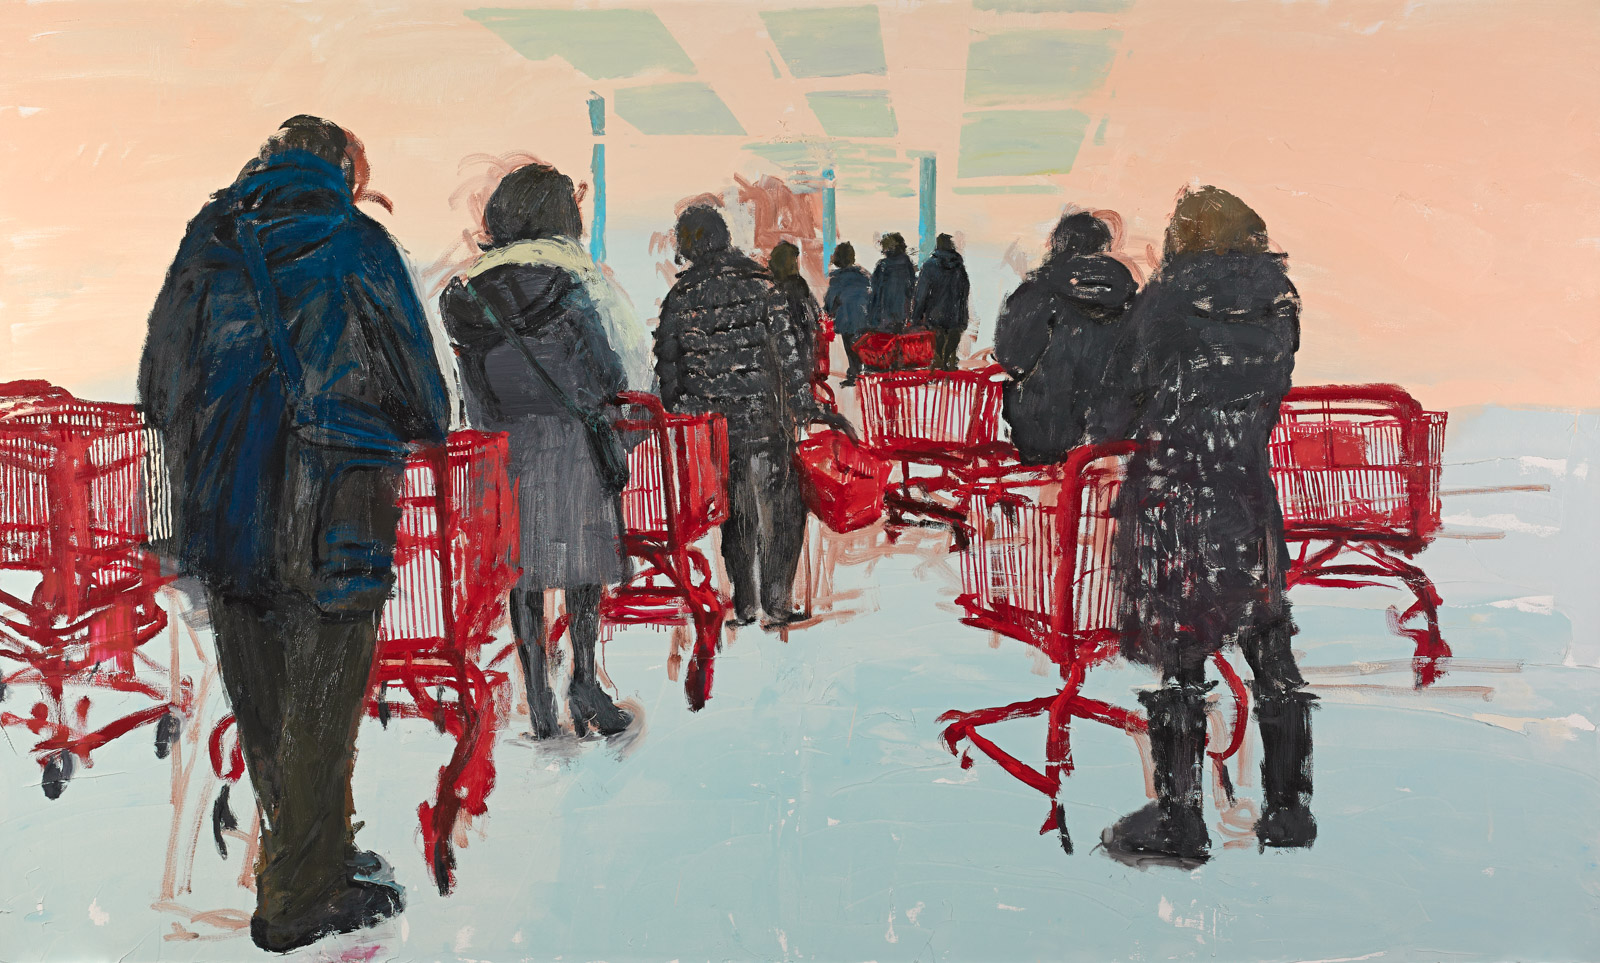 Tirtzah Bassel, Trader Joe's, 2013, oil on canvas, 182,8 x 304,8 cm, Galerie Thomas Fuchs